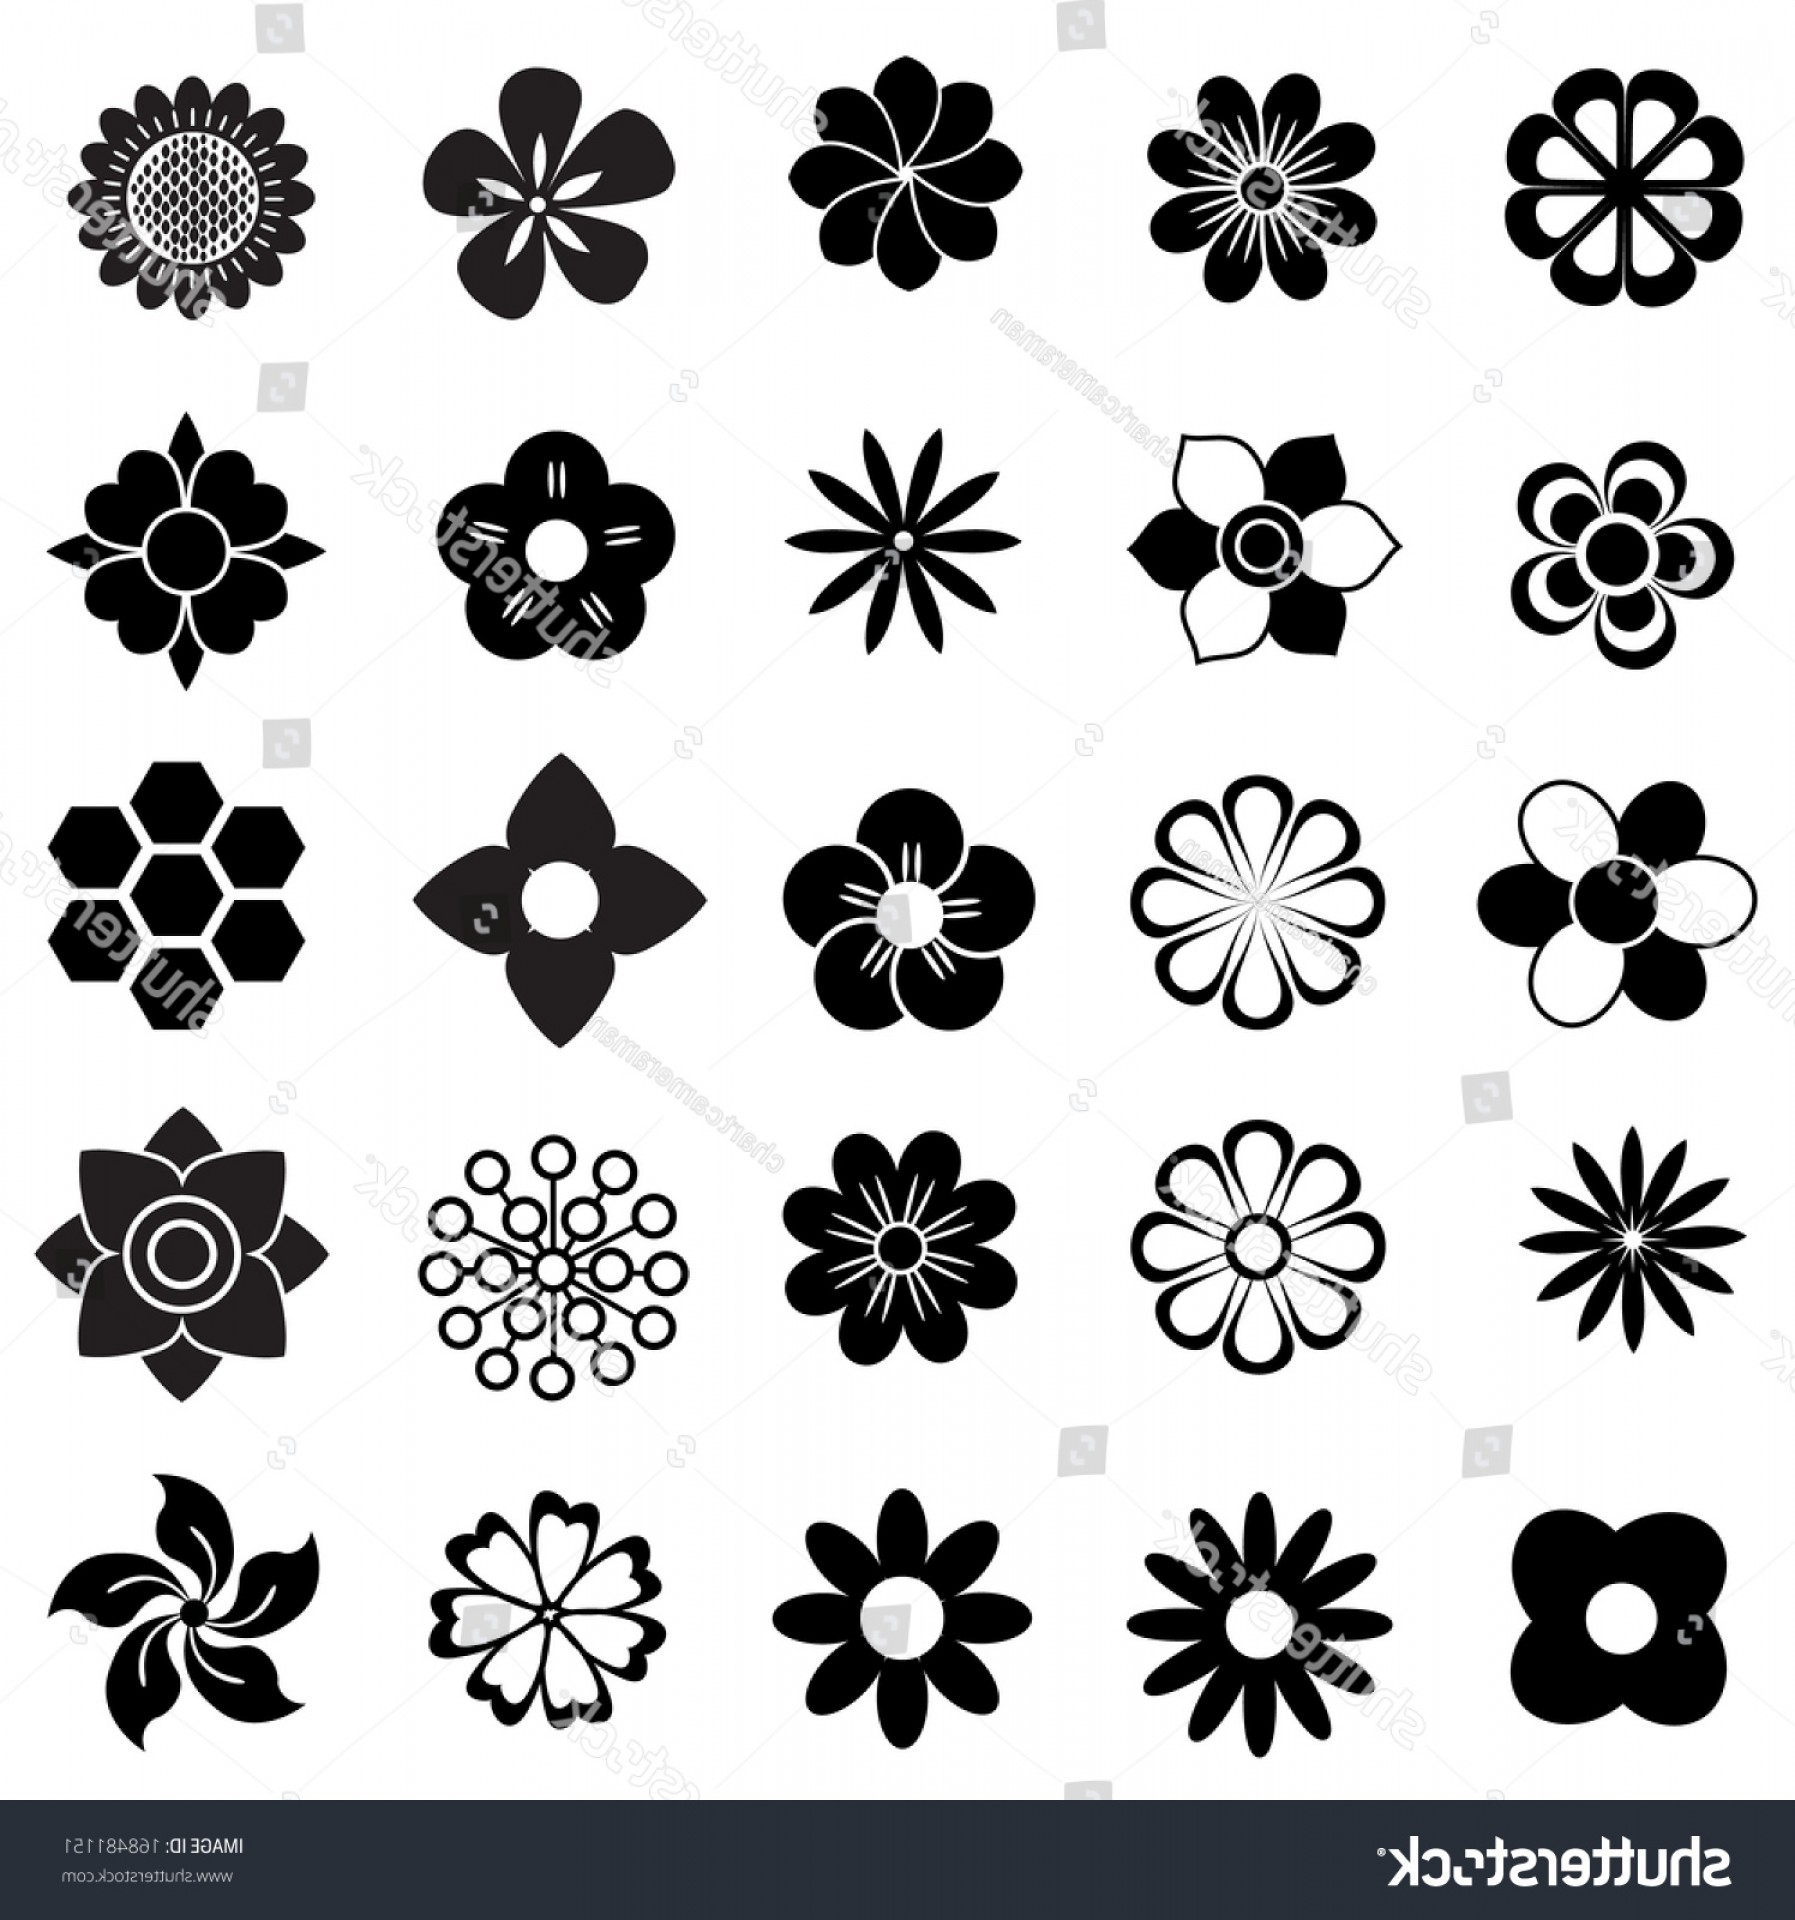 Icon Of Flower Vectors: Flower Vector Set Flowers Icon Decorative